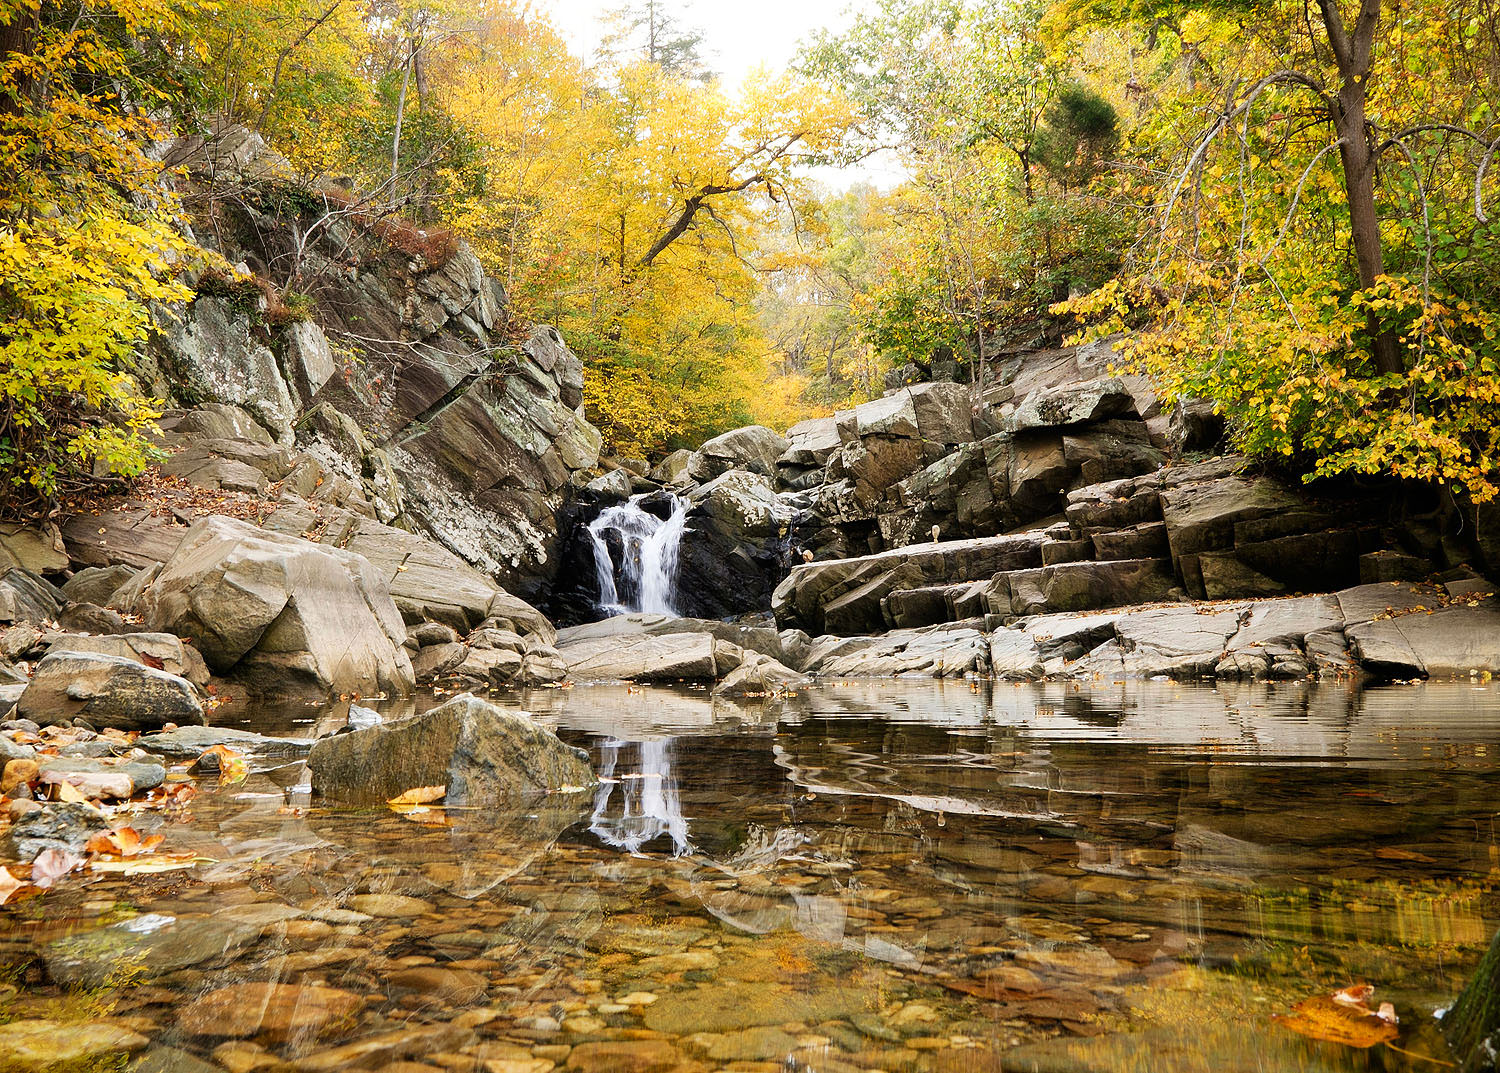 Scott's Run Waterfall | McLean, Virginia